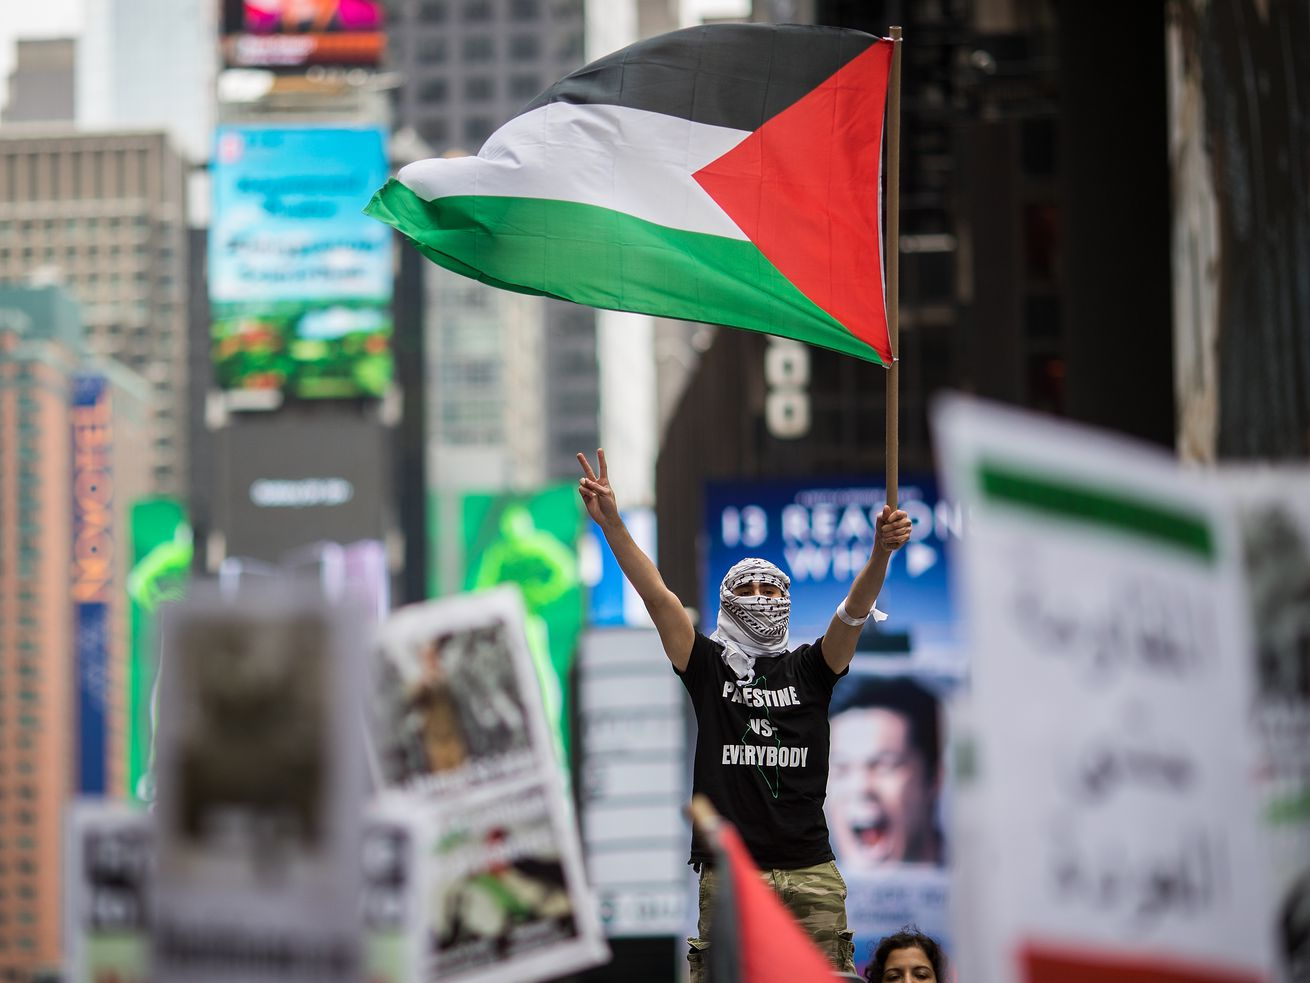 A pro-Palestinian rally in New York in May 2018.